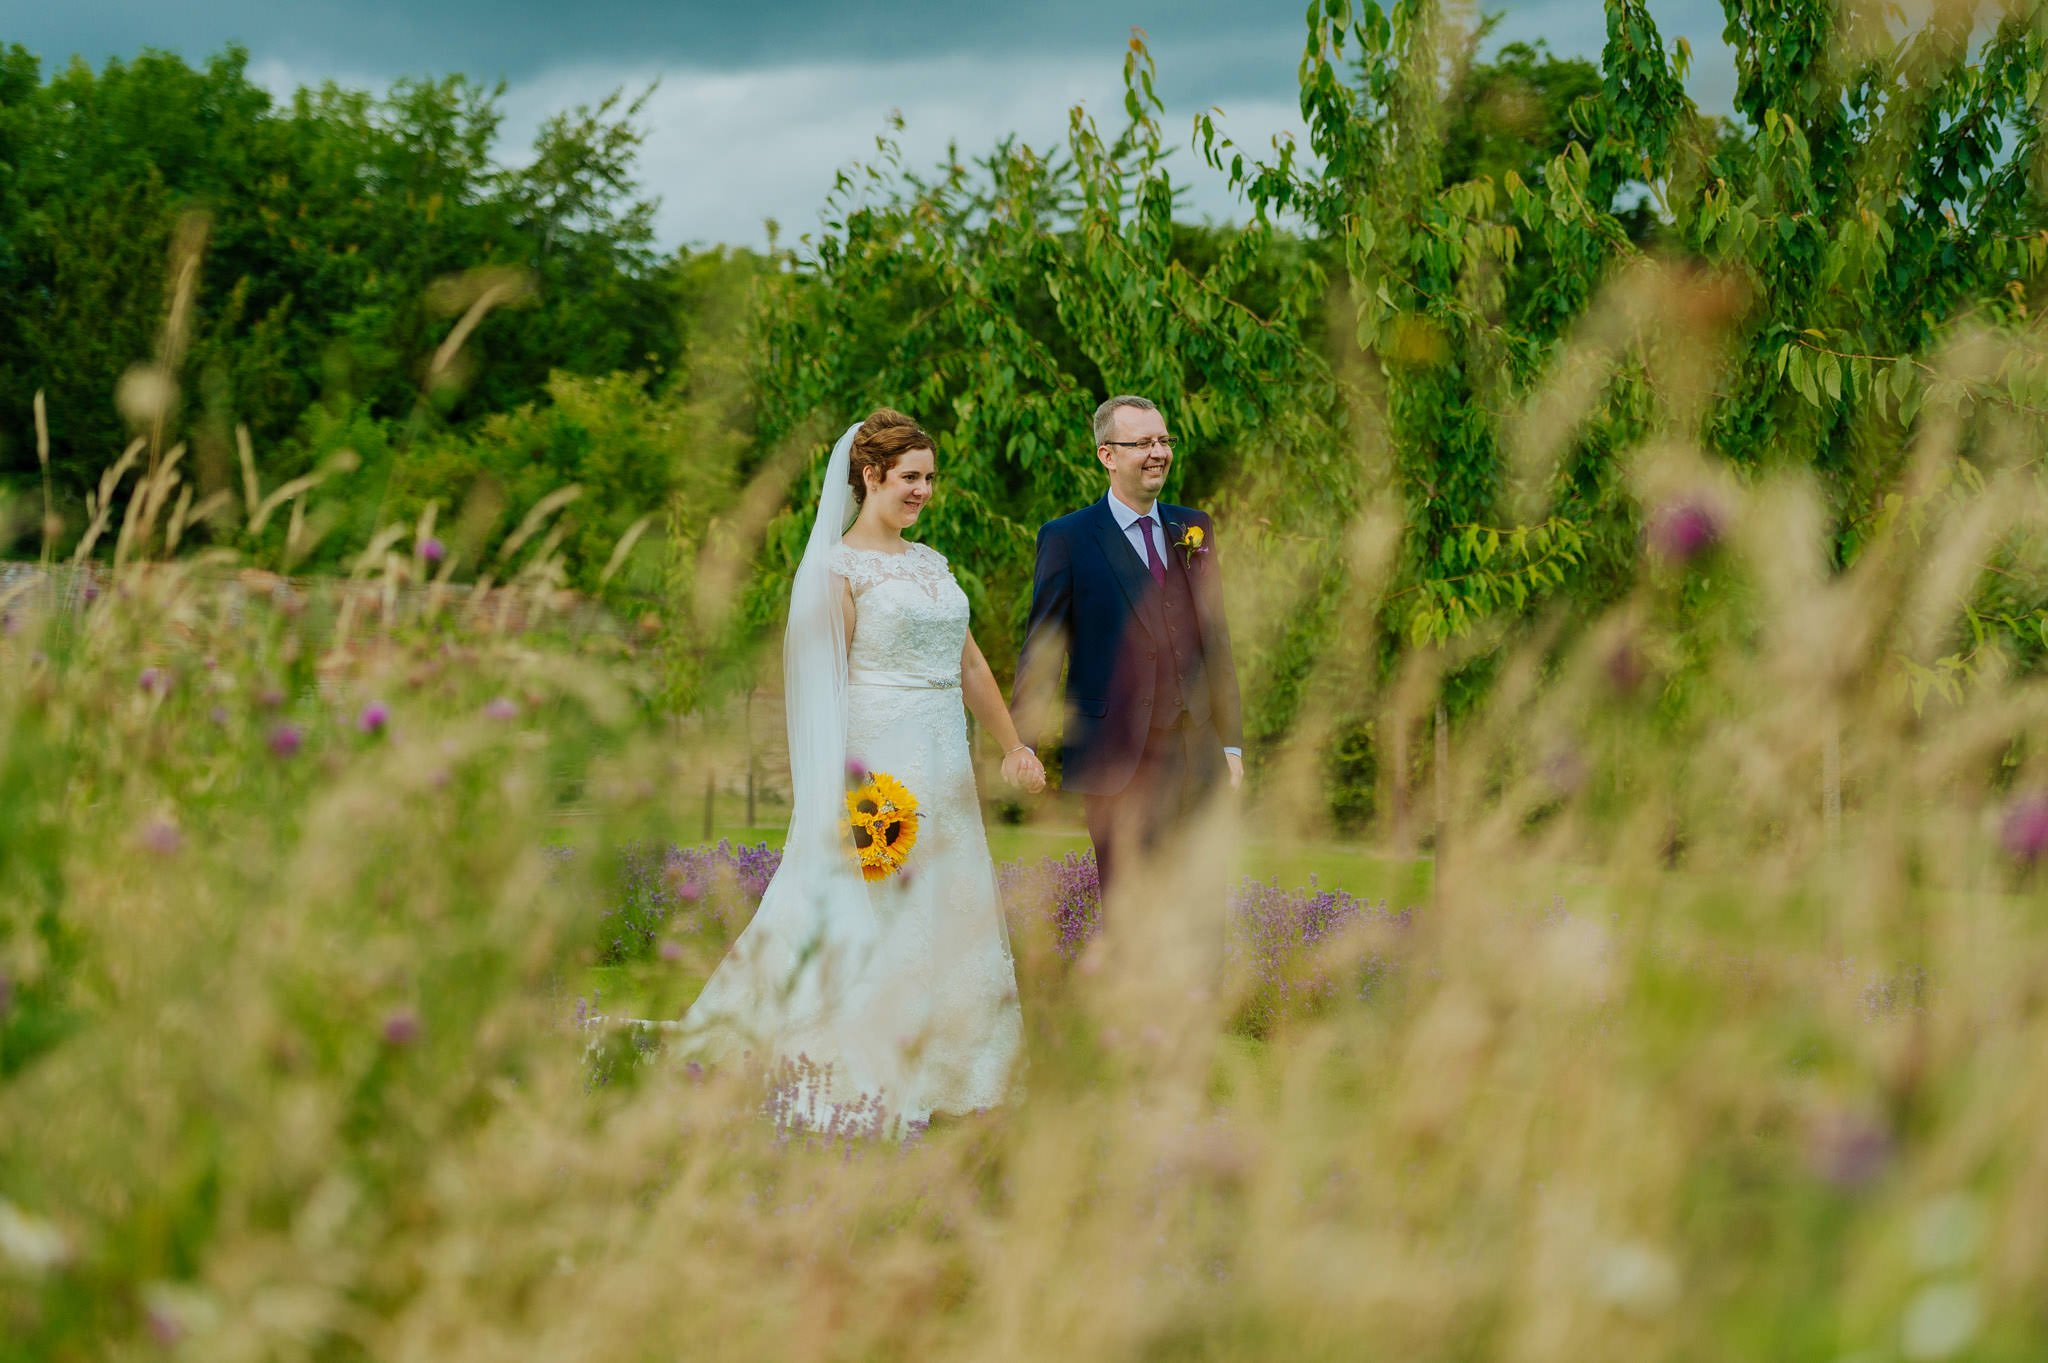 Wedding photography at Homme House in Herefordshire, West Midlands 66